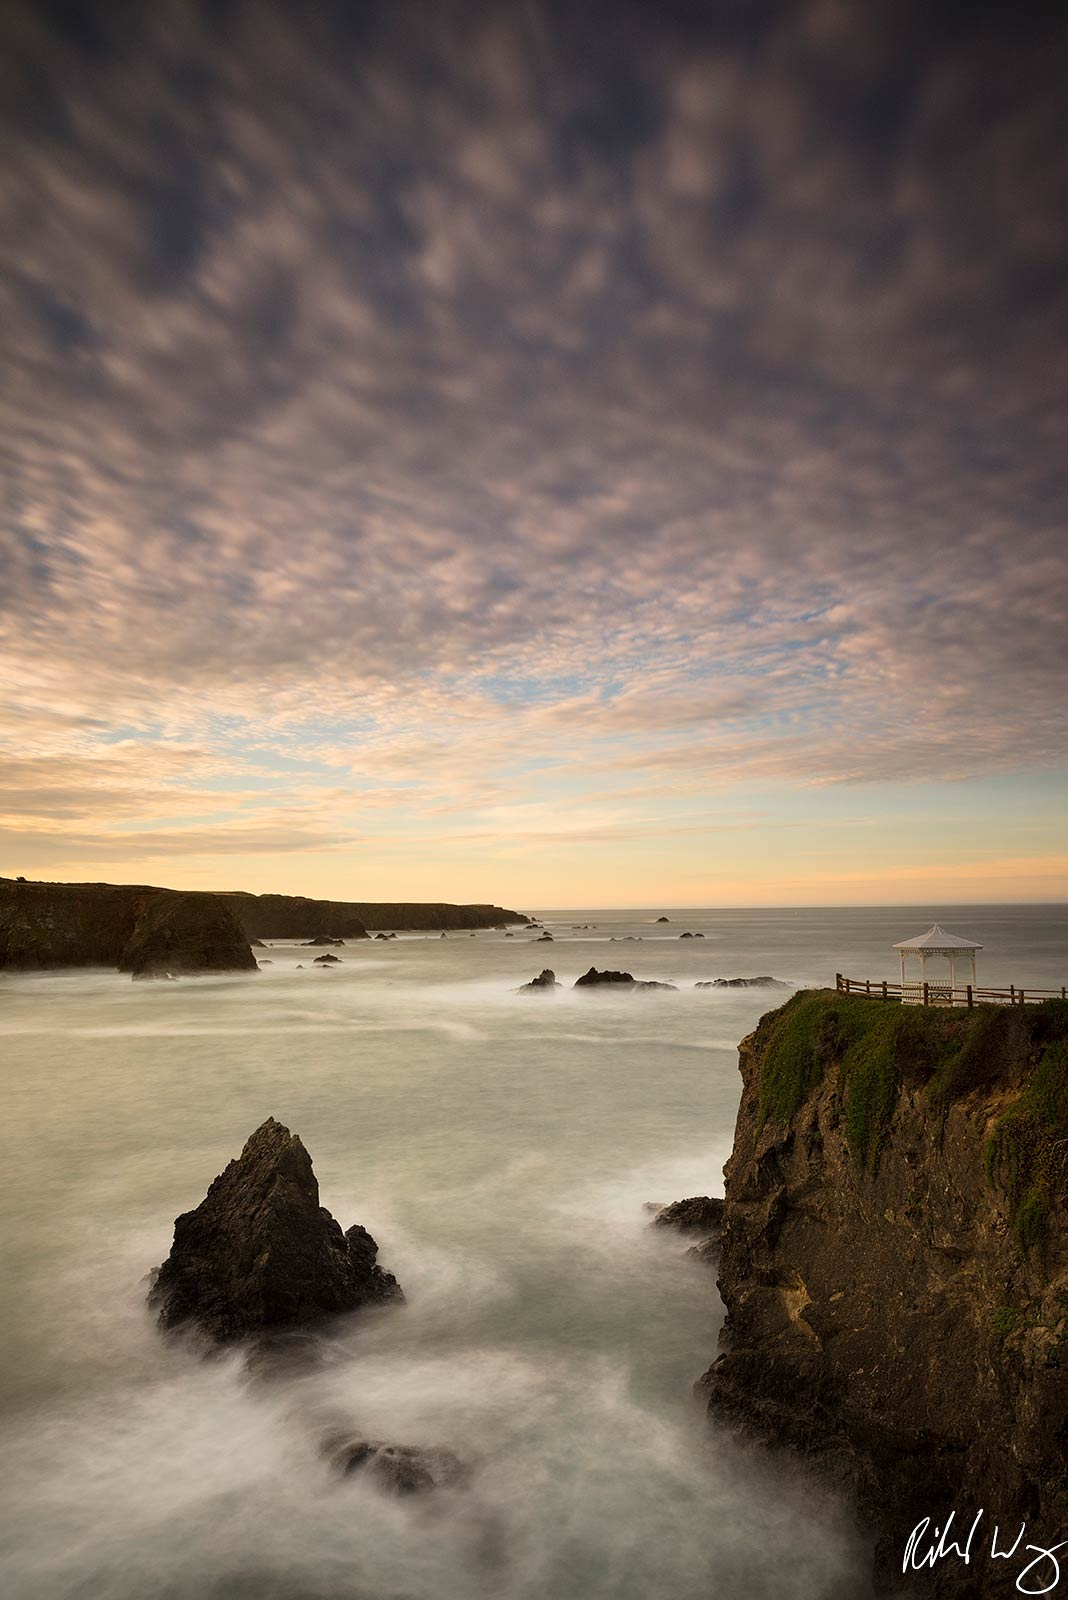 heritage house resort, little river, mendocino coast, california, photo, photo